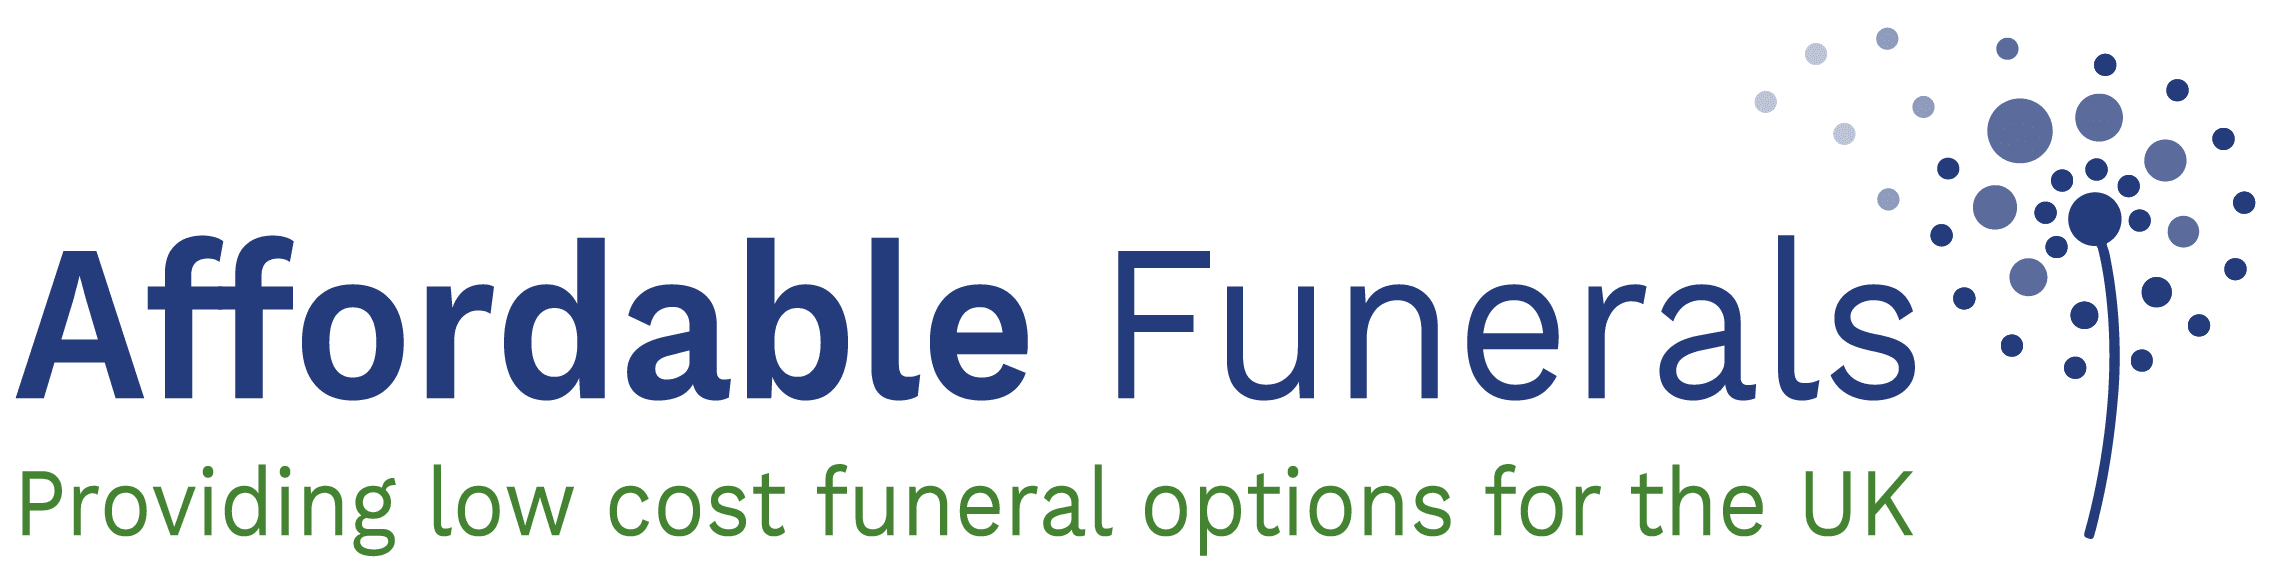 Affordable Funerals